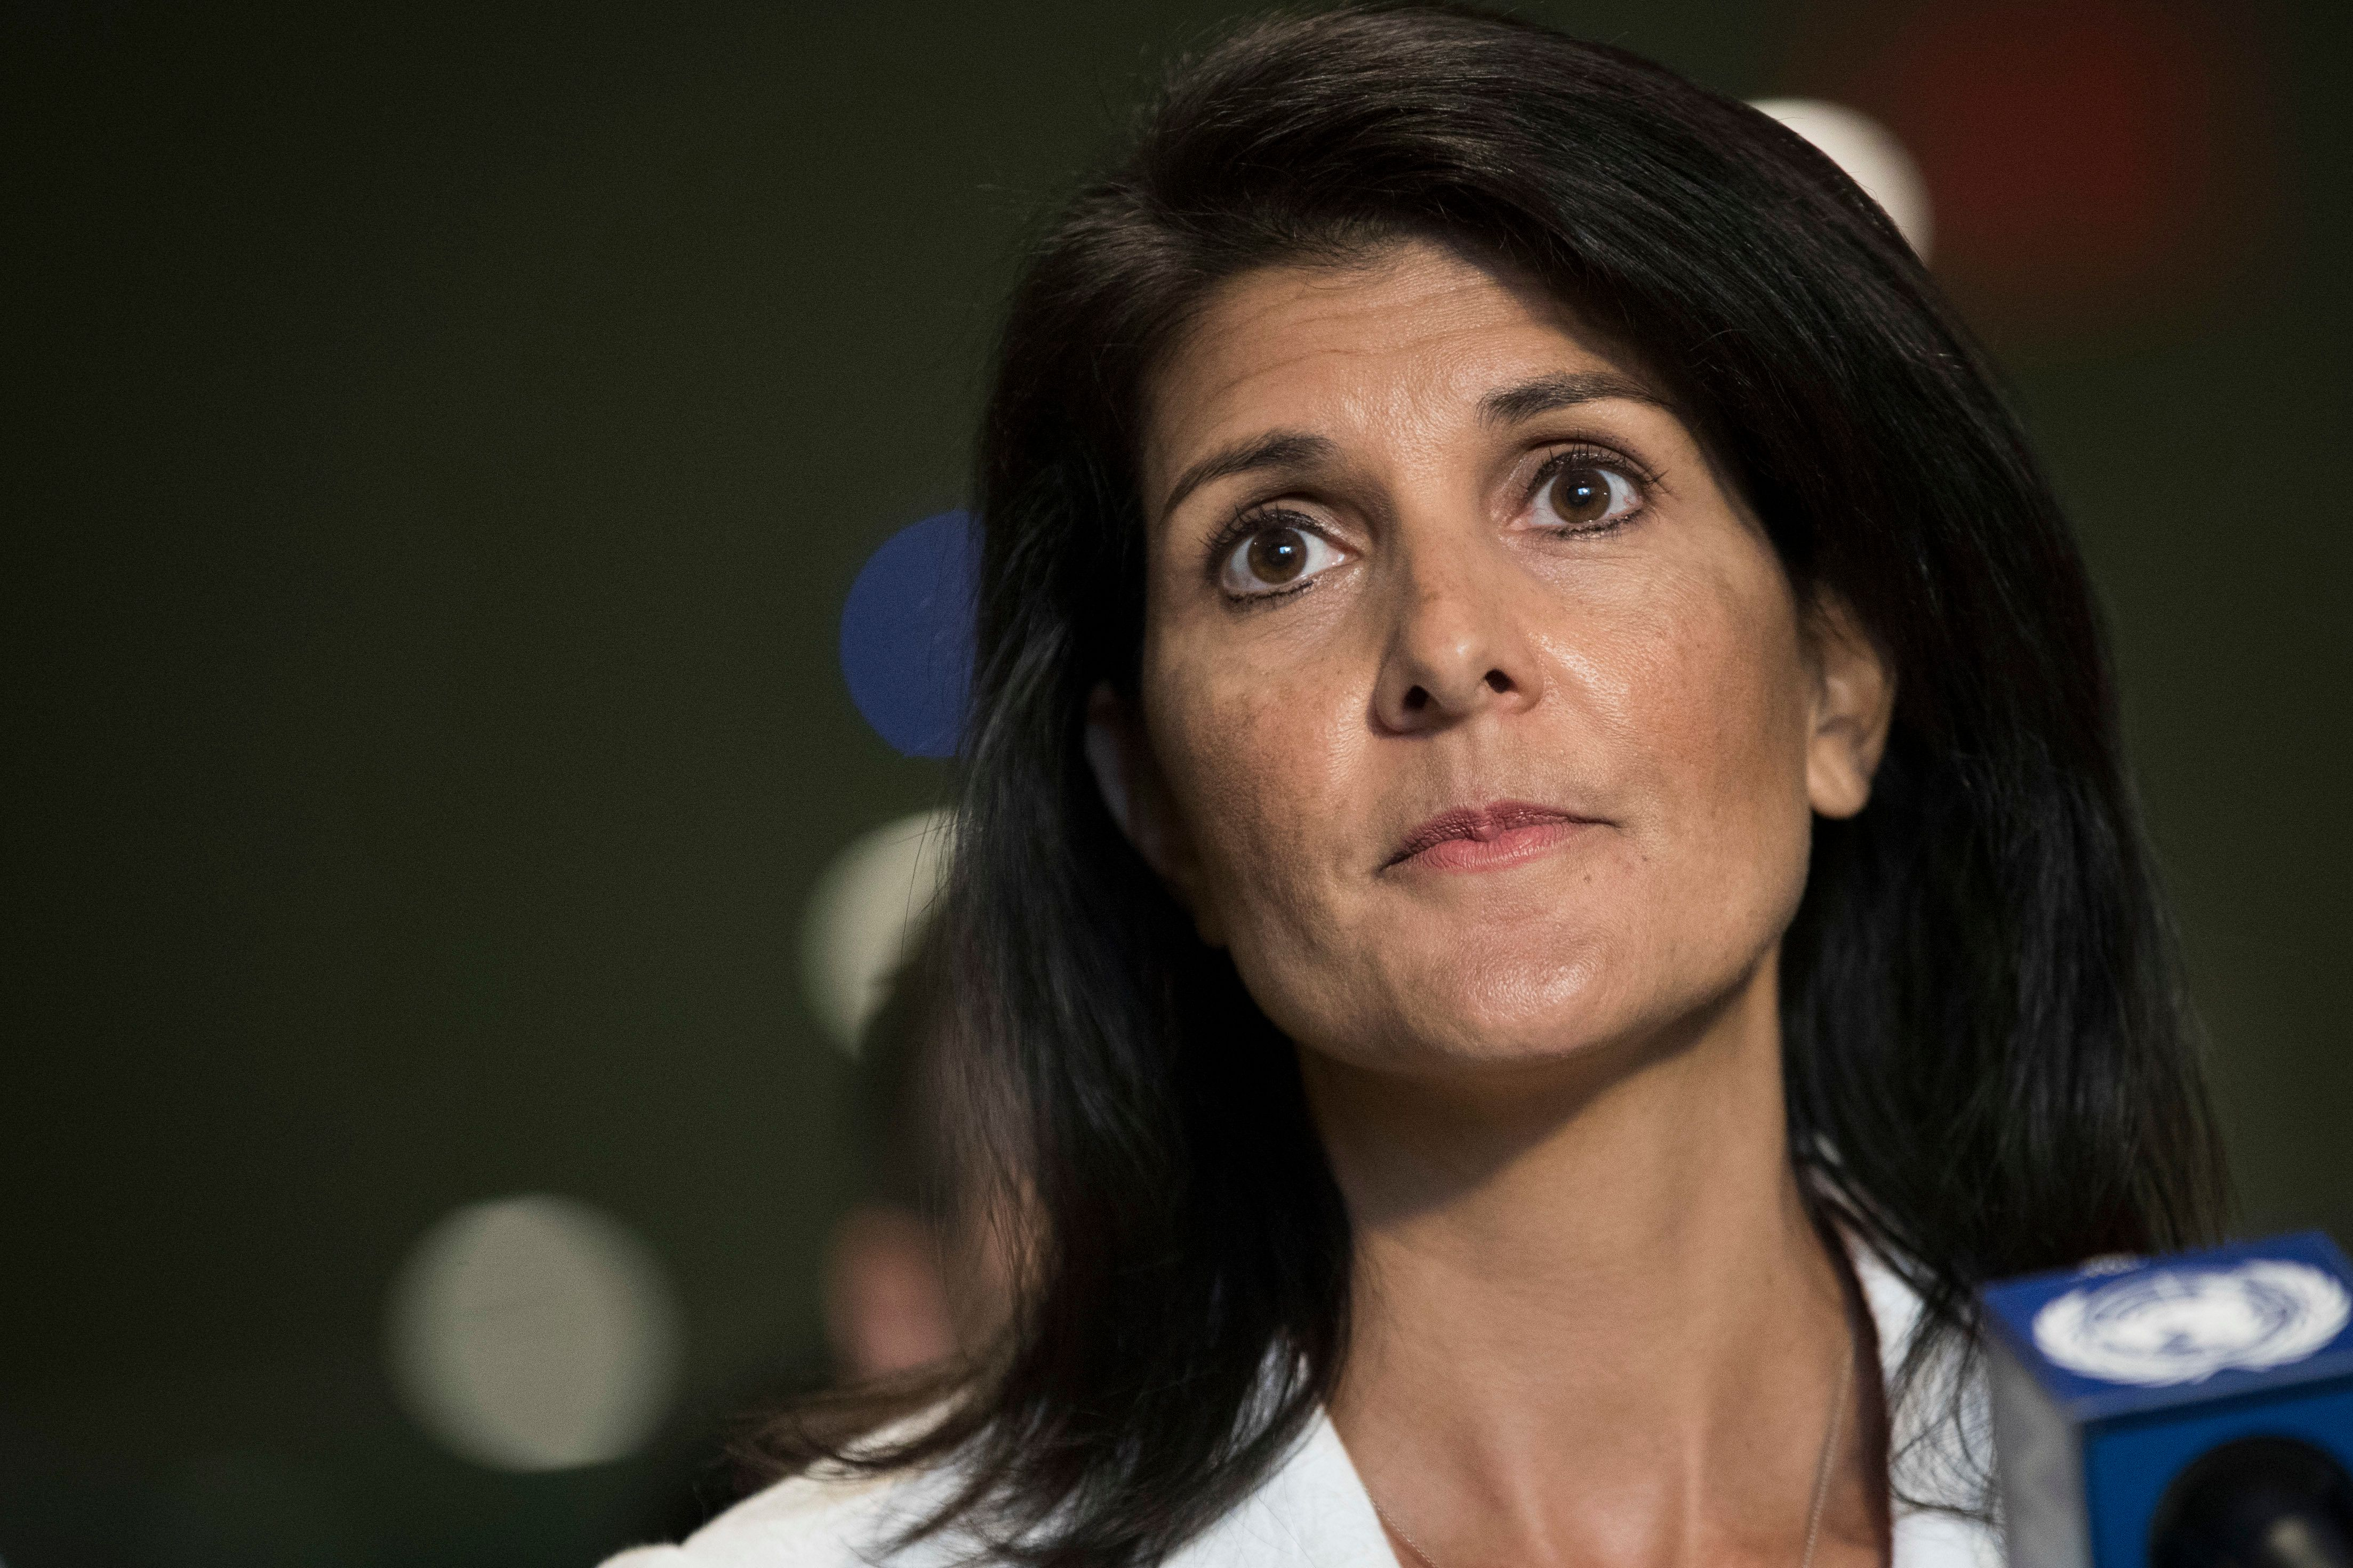 NEW YORK, NY - MARCH 27: U.S. Ambassador to the United Nation Nikki Haley speaks to reporters at the United Nations headquarters, March 27, 2017 in New York City. The U.S. and more han 30 countries, including Britain and France, are not joining negotiations concerning a United Nations nuclear weapons ban treaty. (Photo by Drew Angerer/Getty Images)